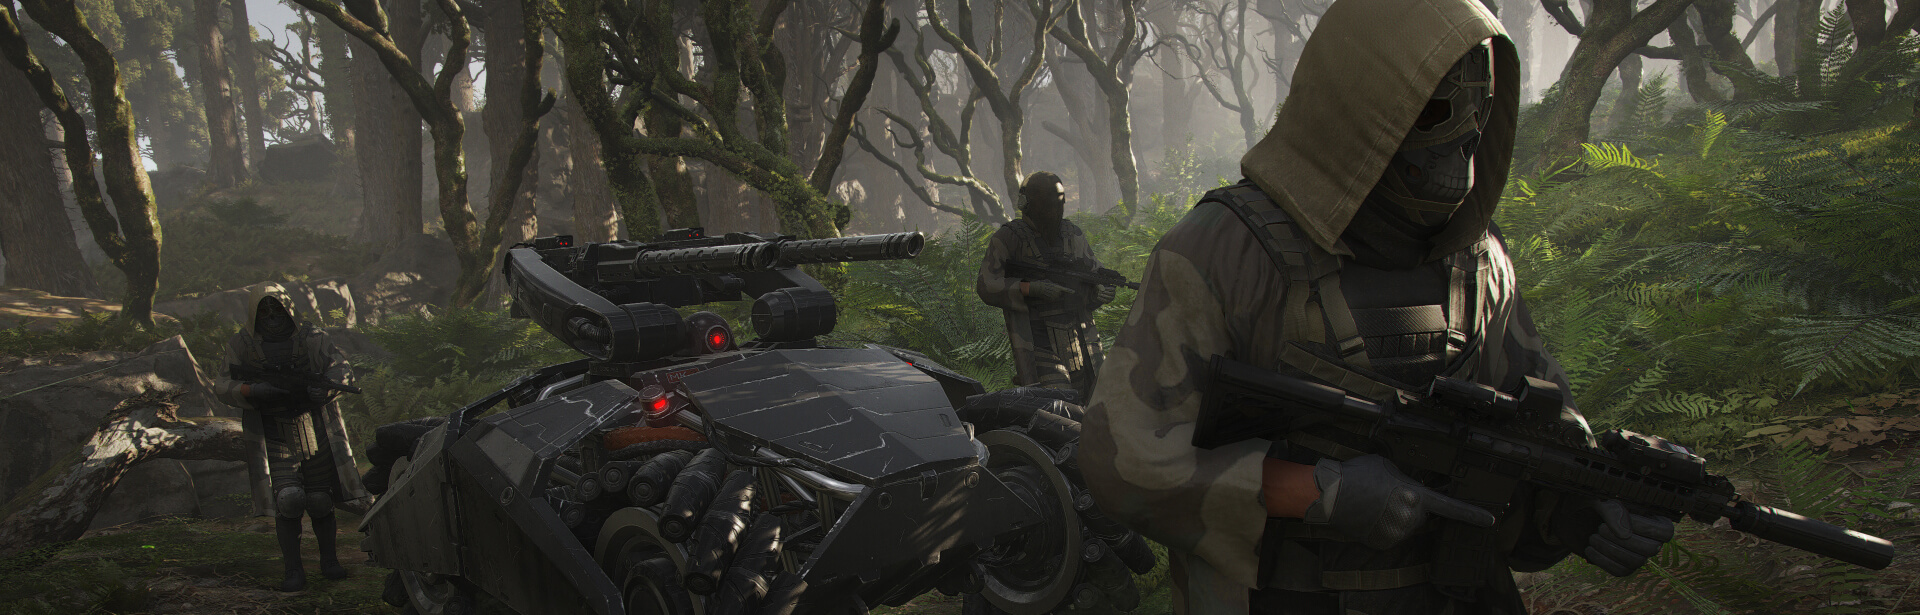 Ghost Recon Breakpoint Game Guide header